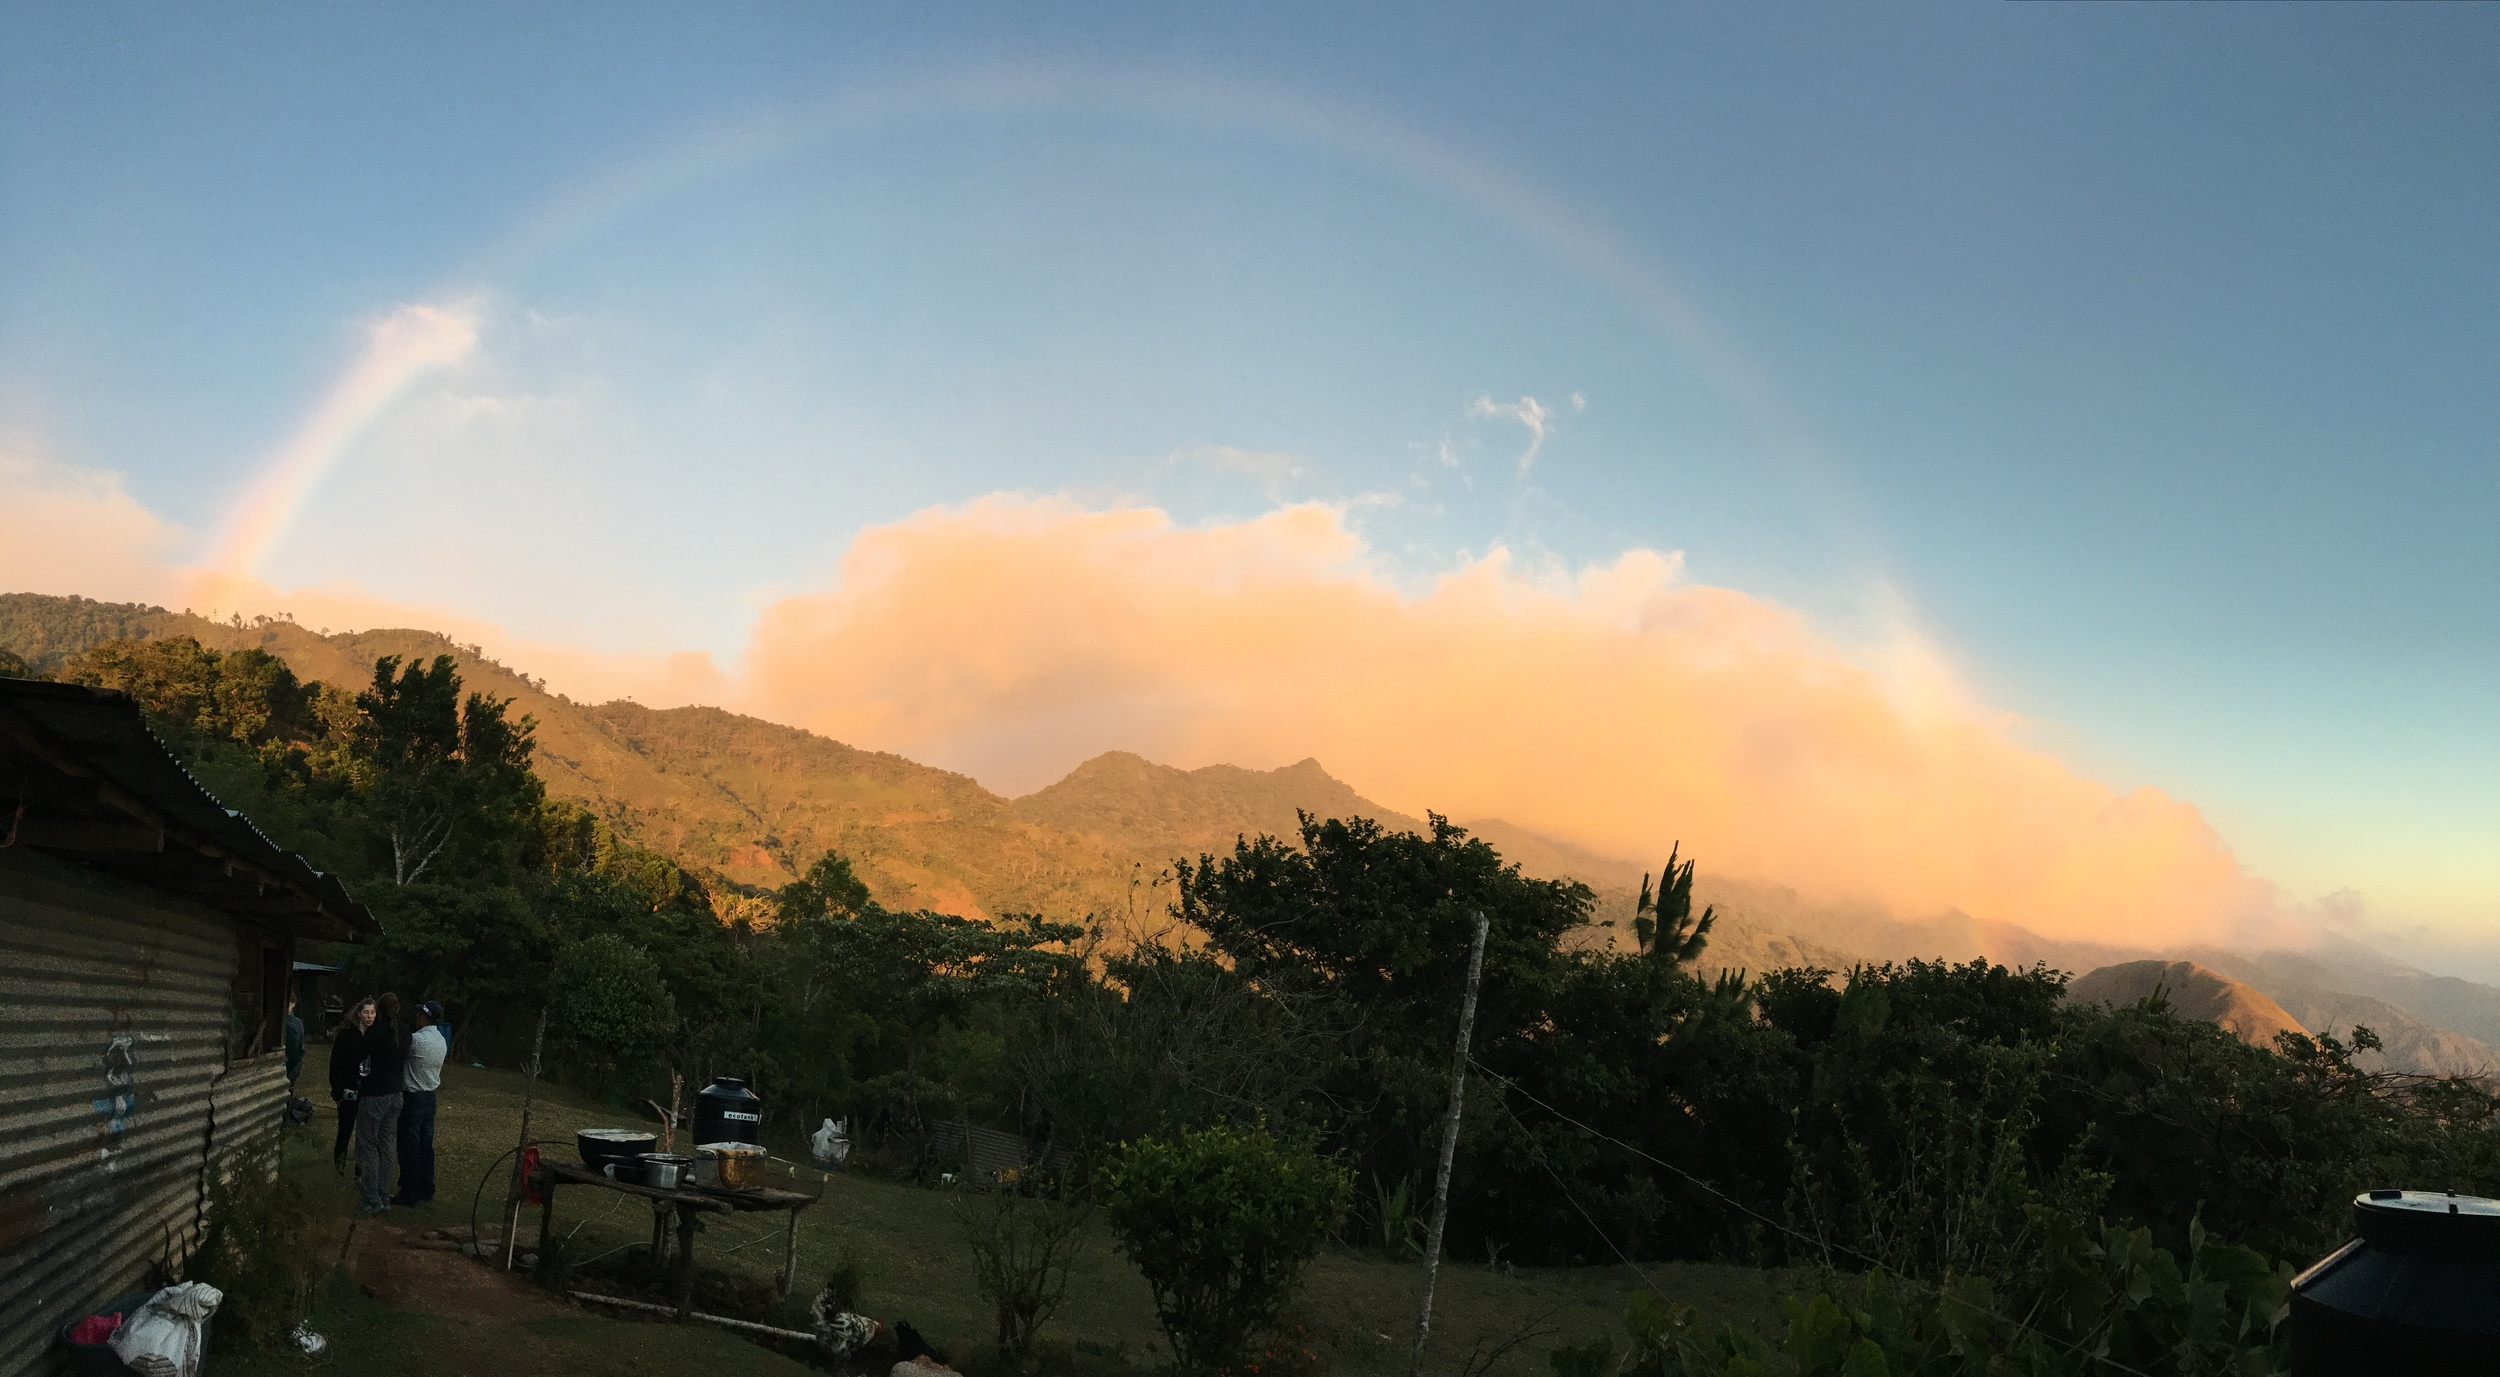 10. Rainbow over the Comarca! The stunning views of the Comarca from Hato Ratón were magnified by this full rainbow that was created by the mist flowing over the central mountains from the Atlantic Ocean to the Pacific Ocean.